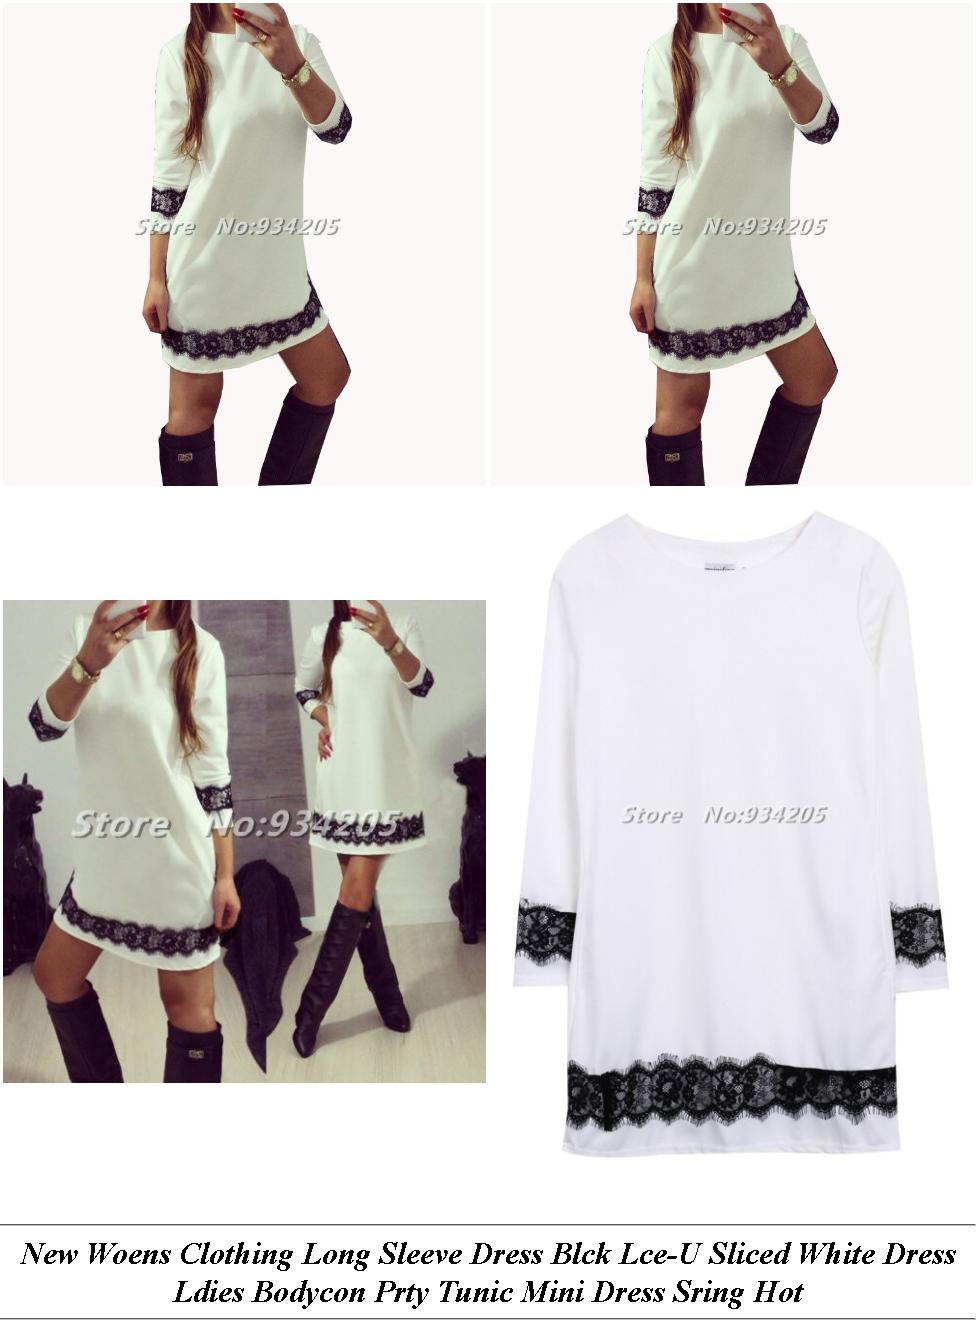 Womens Short Dresses With Sleeves - Where To Uy Fake Designer Clothes Uk - Cheap Ladies Dresses Eay